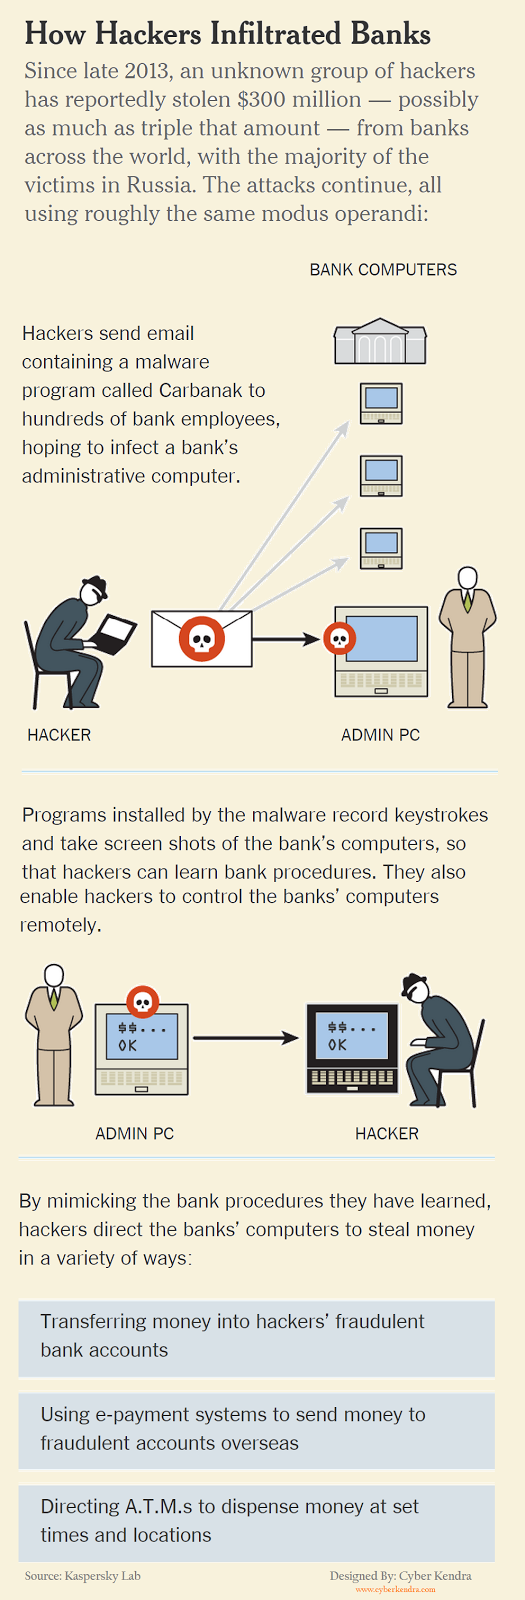 Bank Hackers Steal $300 Millions via Malware